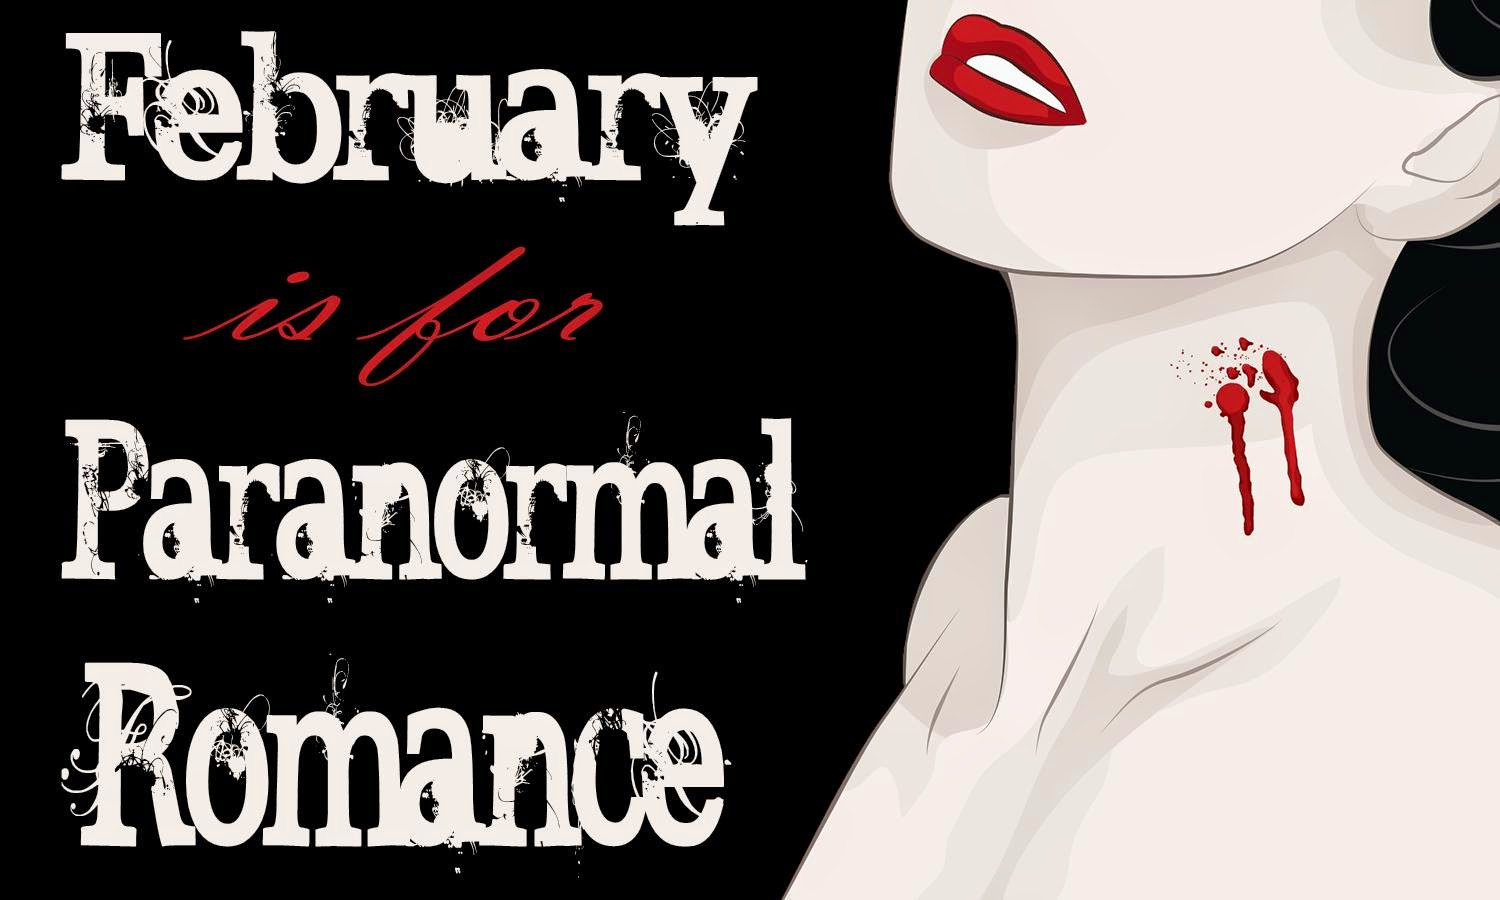 February is for Paranormal Romance Q+A with Angela Addams + Giveaway